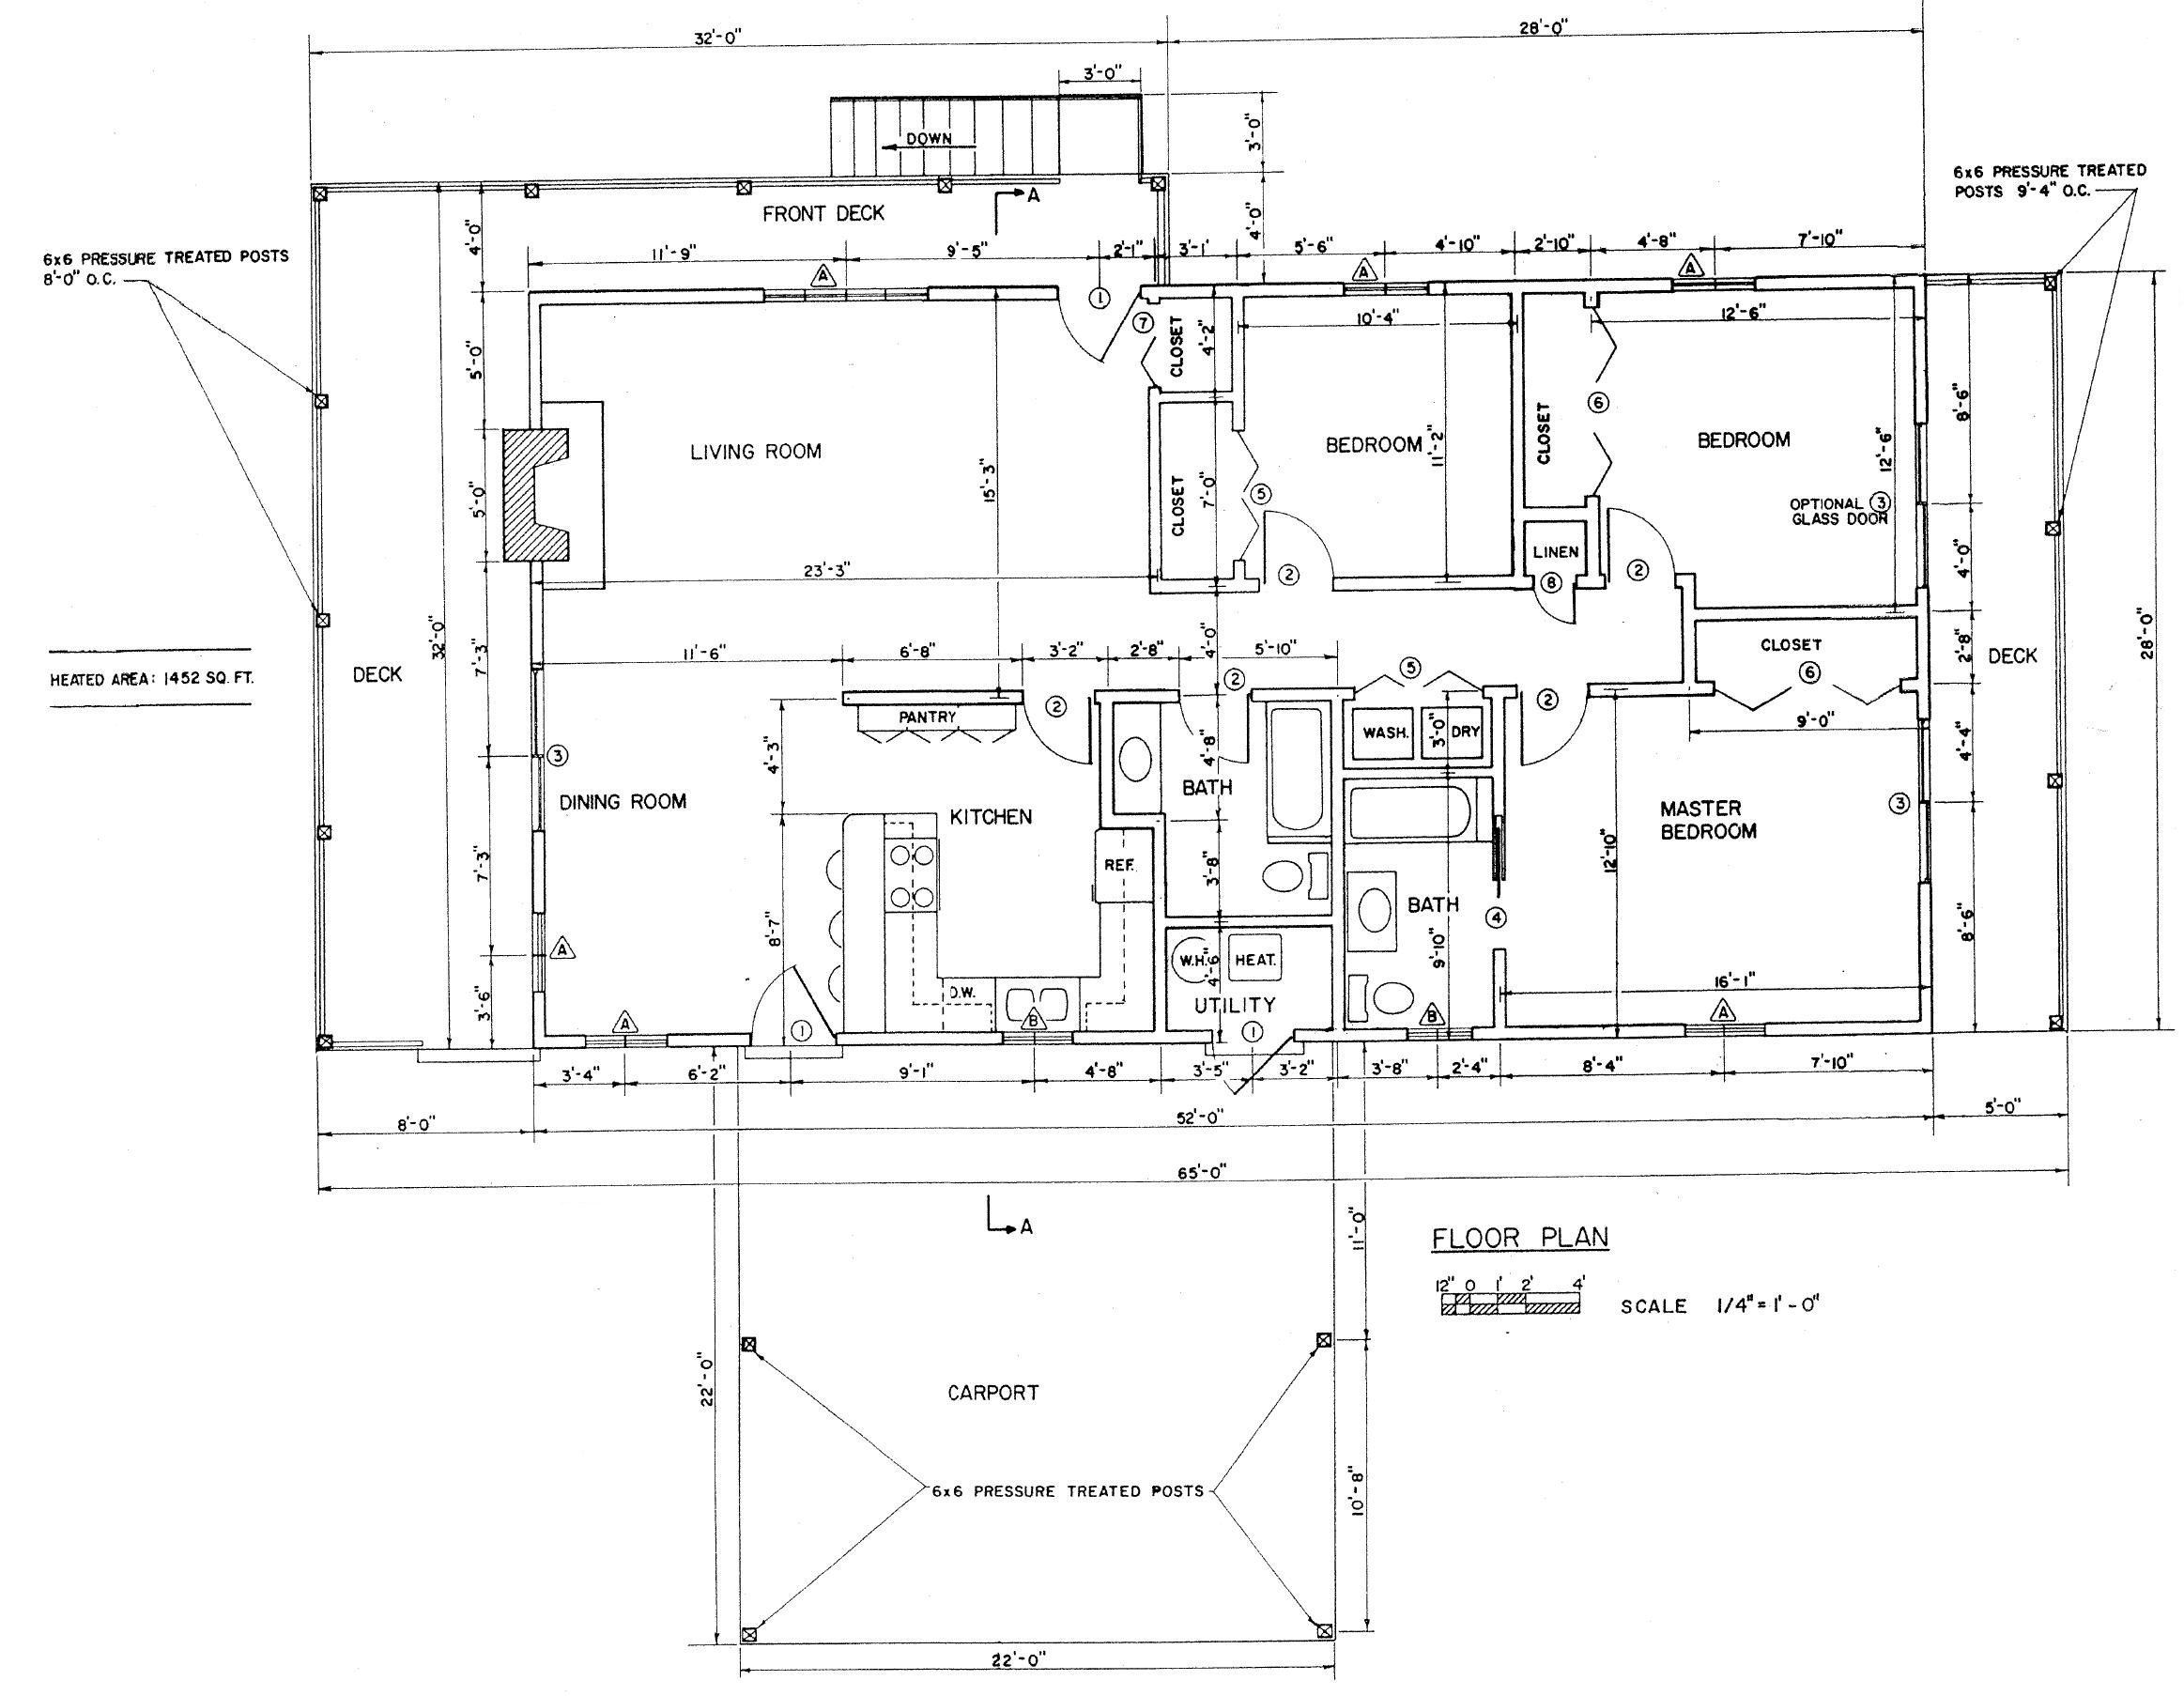 House plans freedenenasvalencia Free home floor plan design